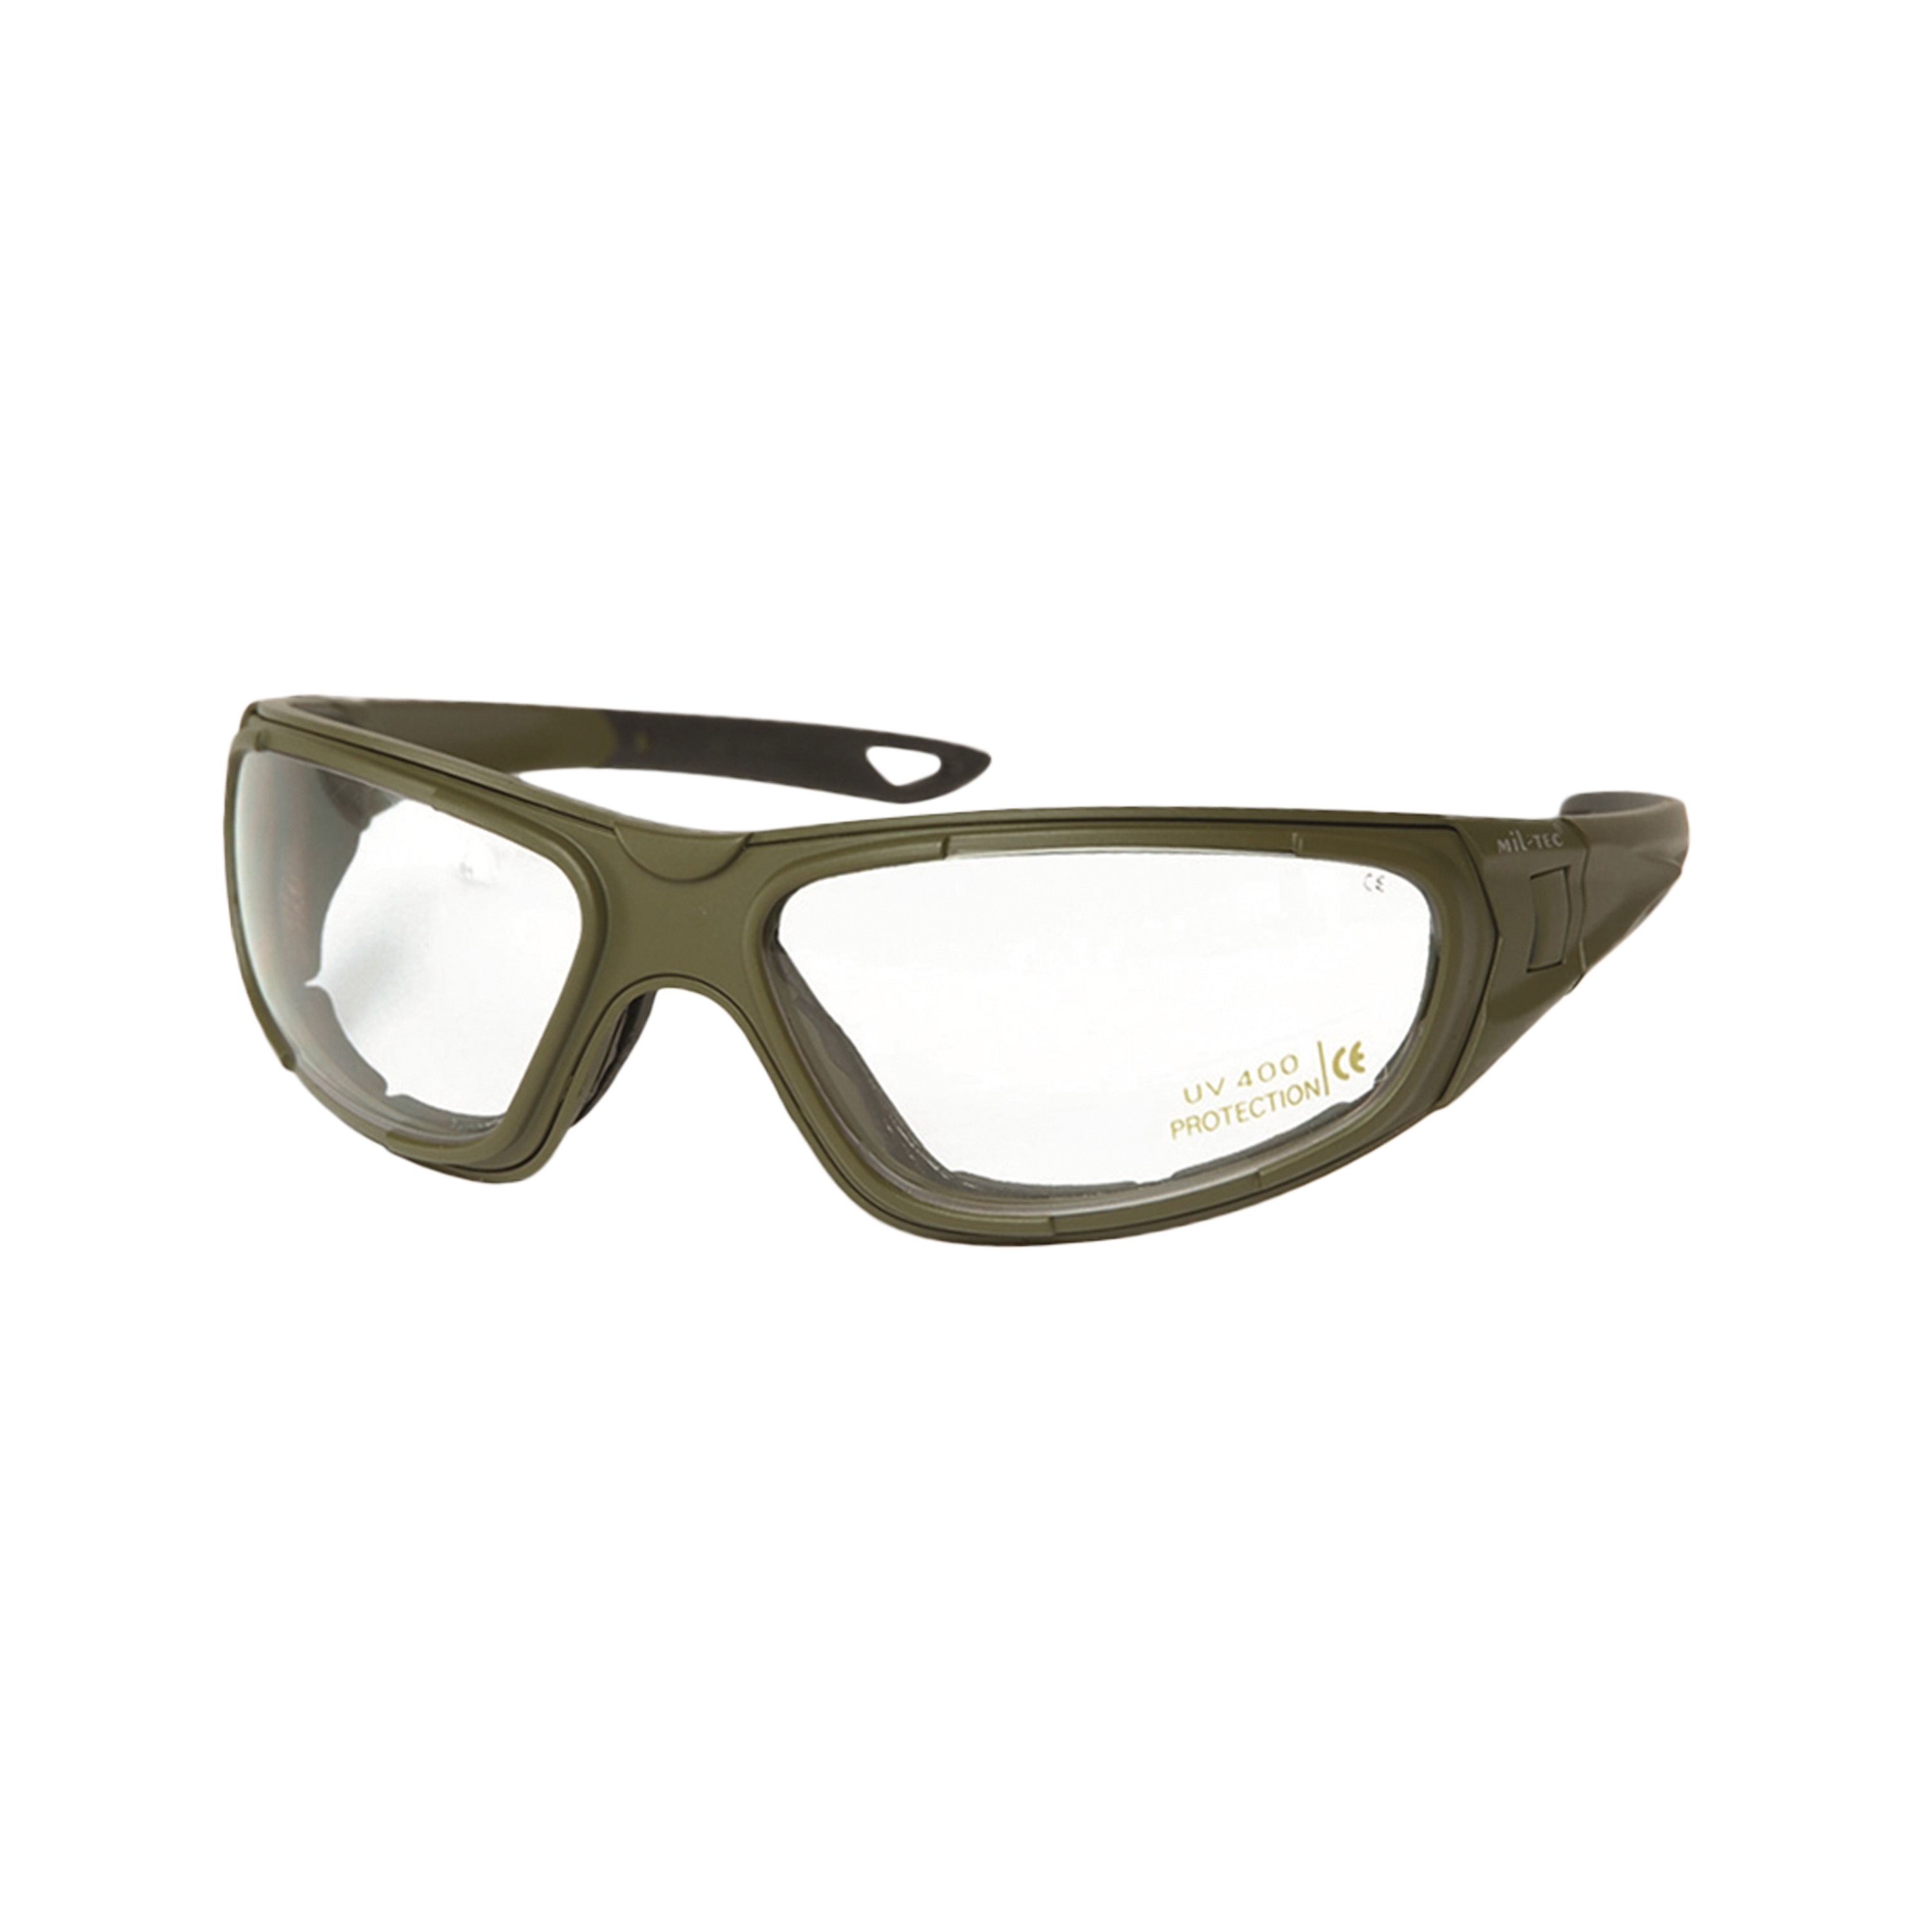 Brille Tactical Goggle 3in1 oliv